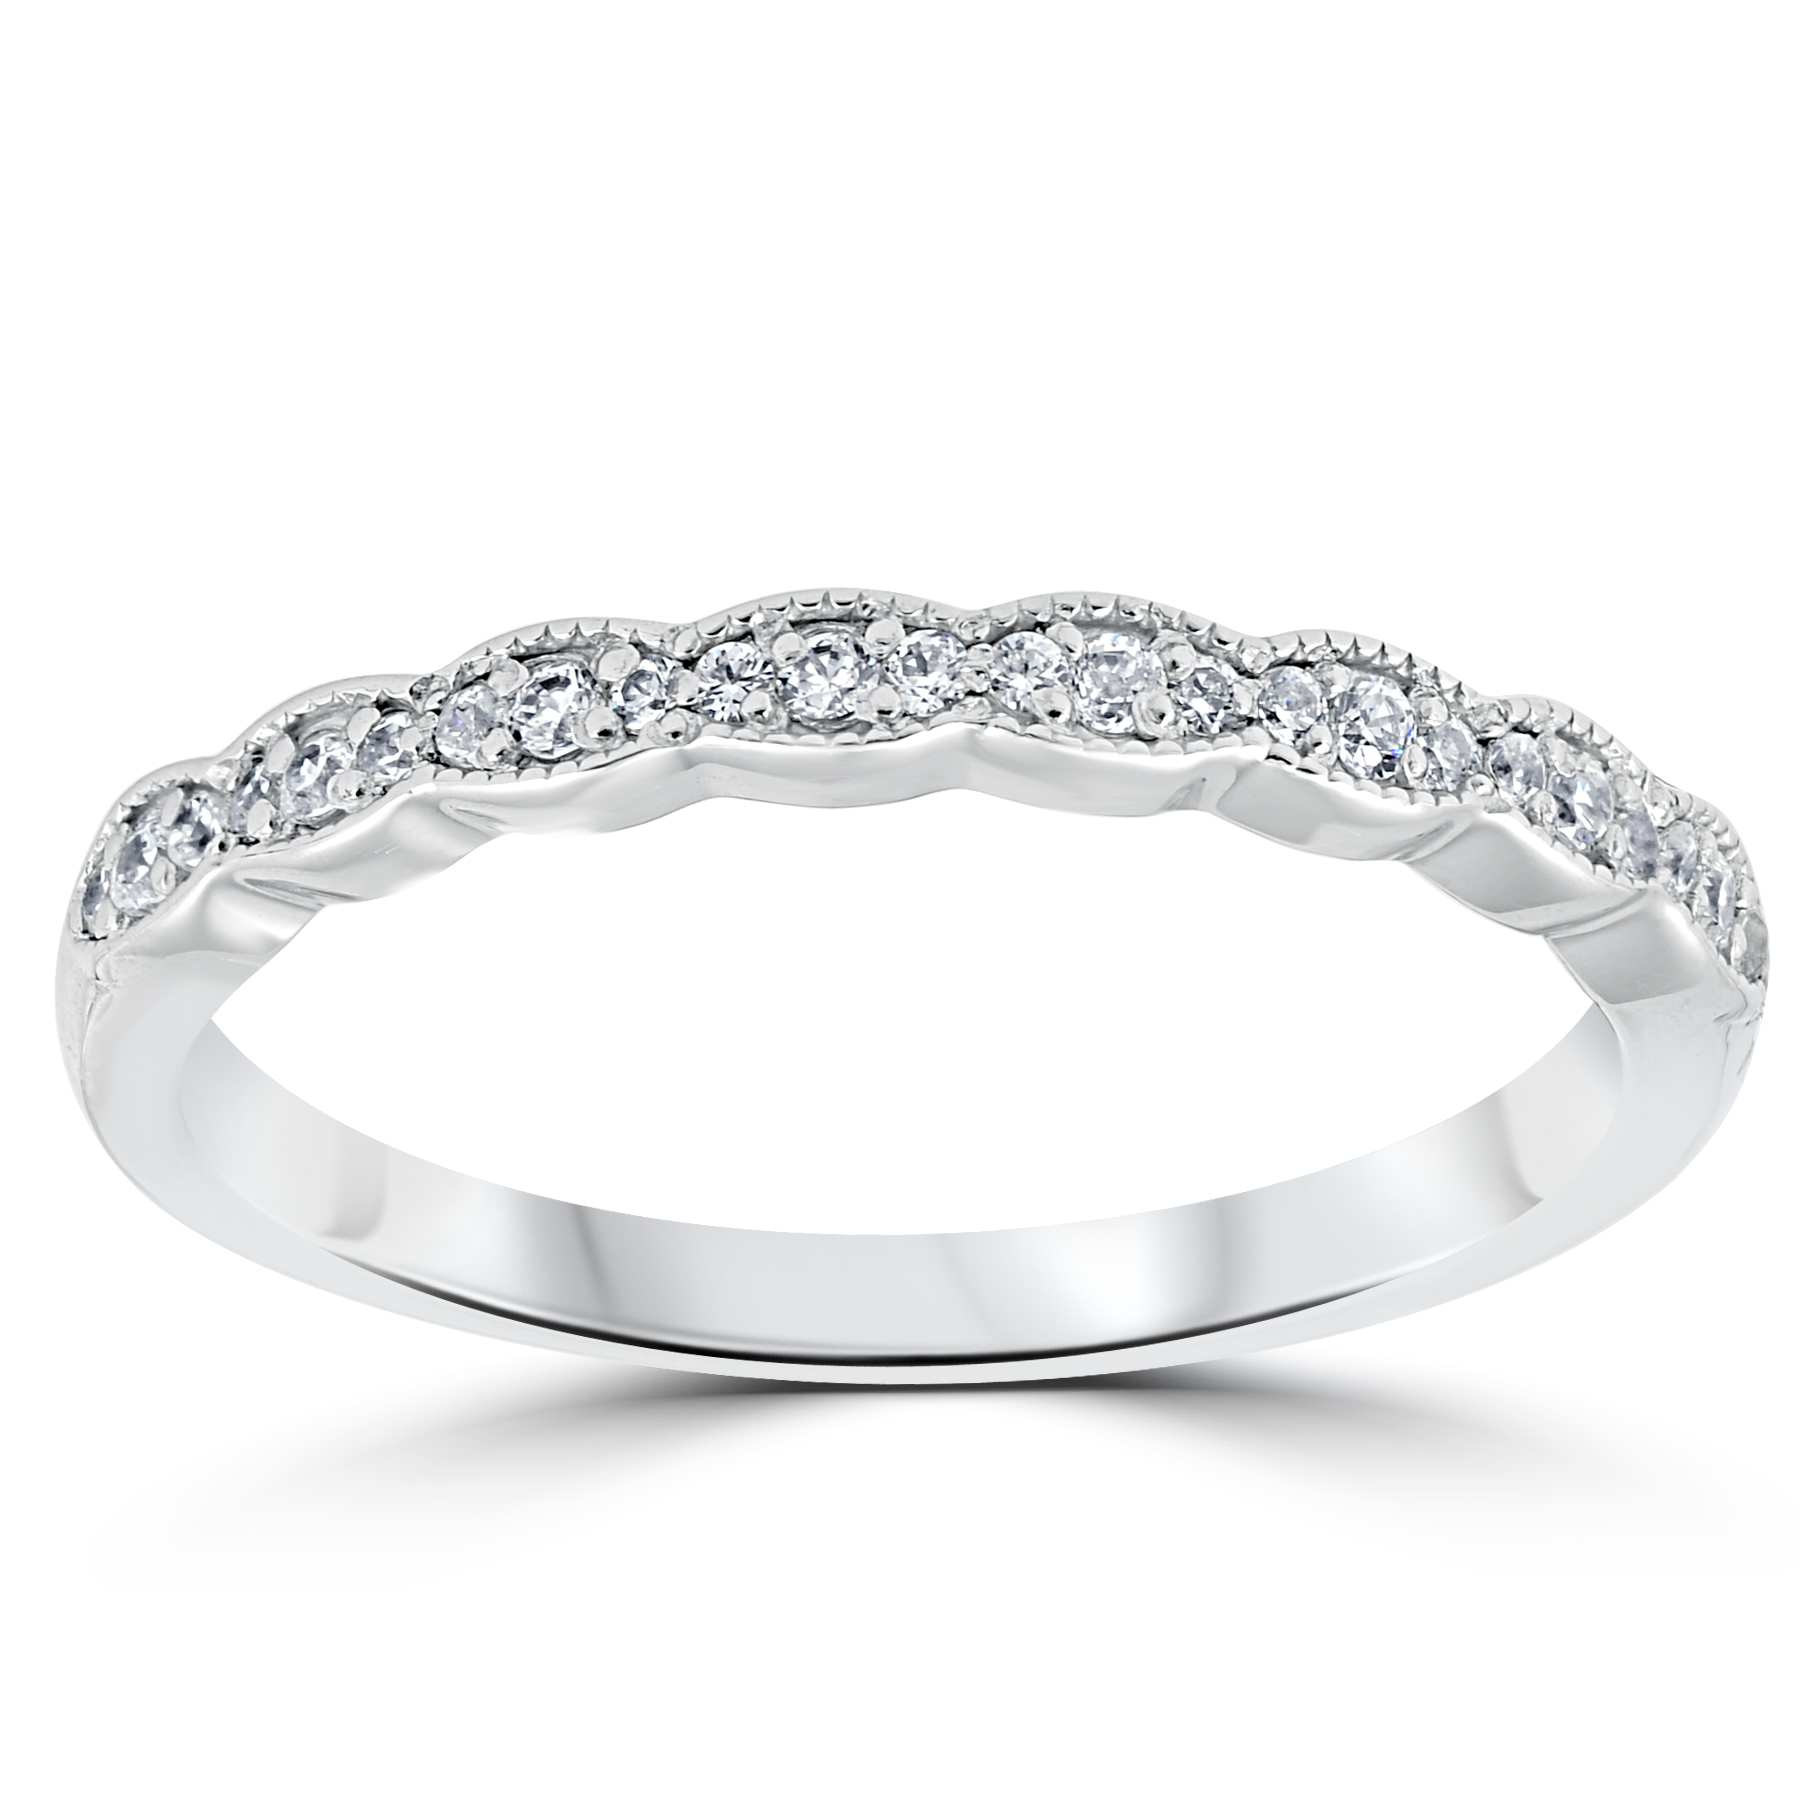 14k white gold wedding rings